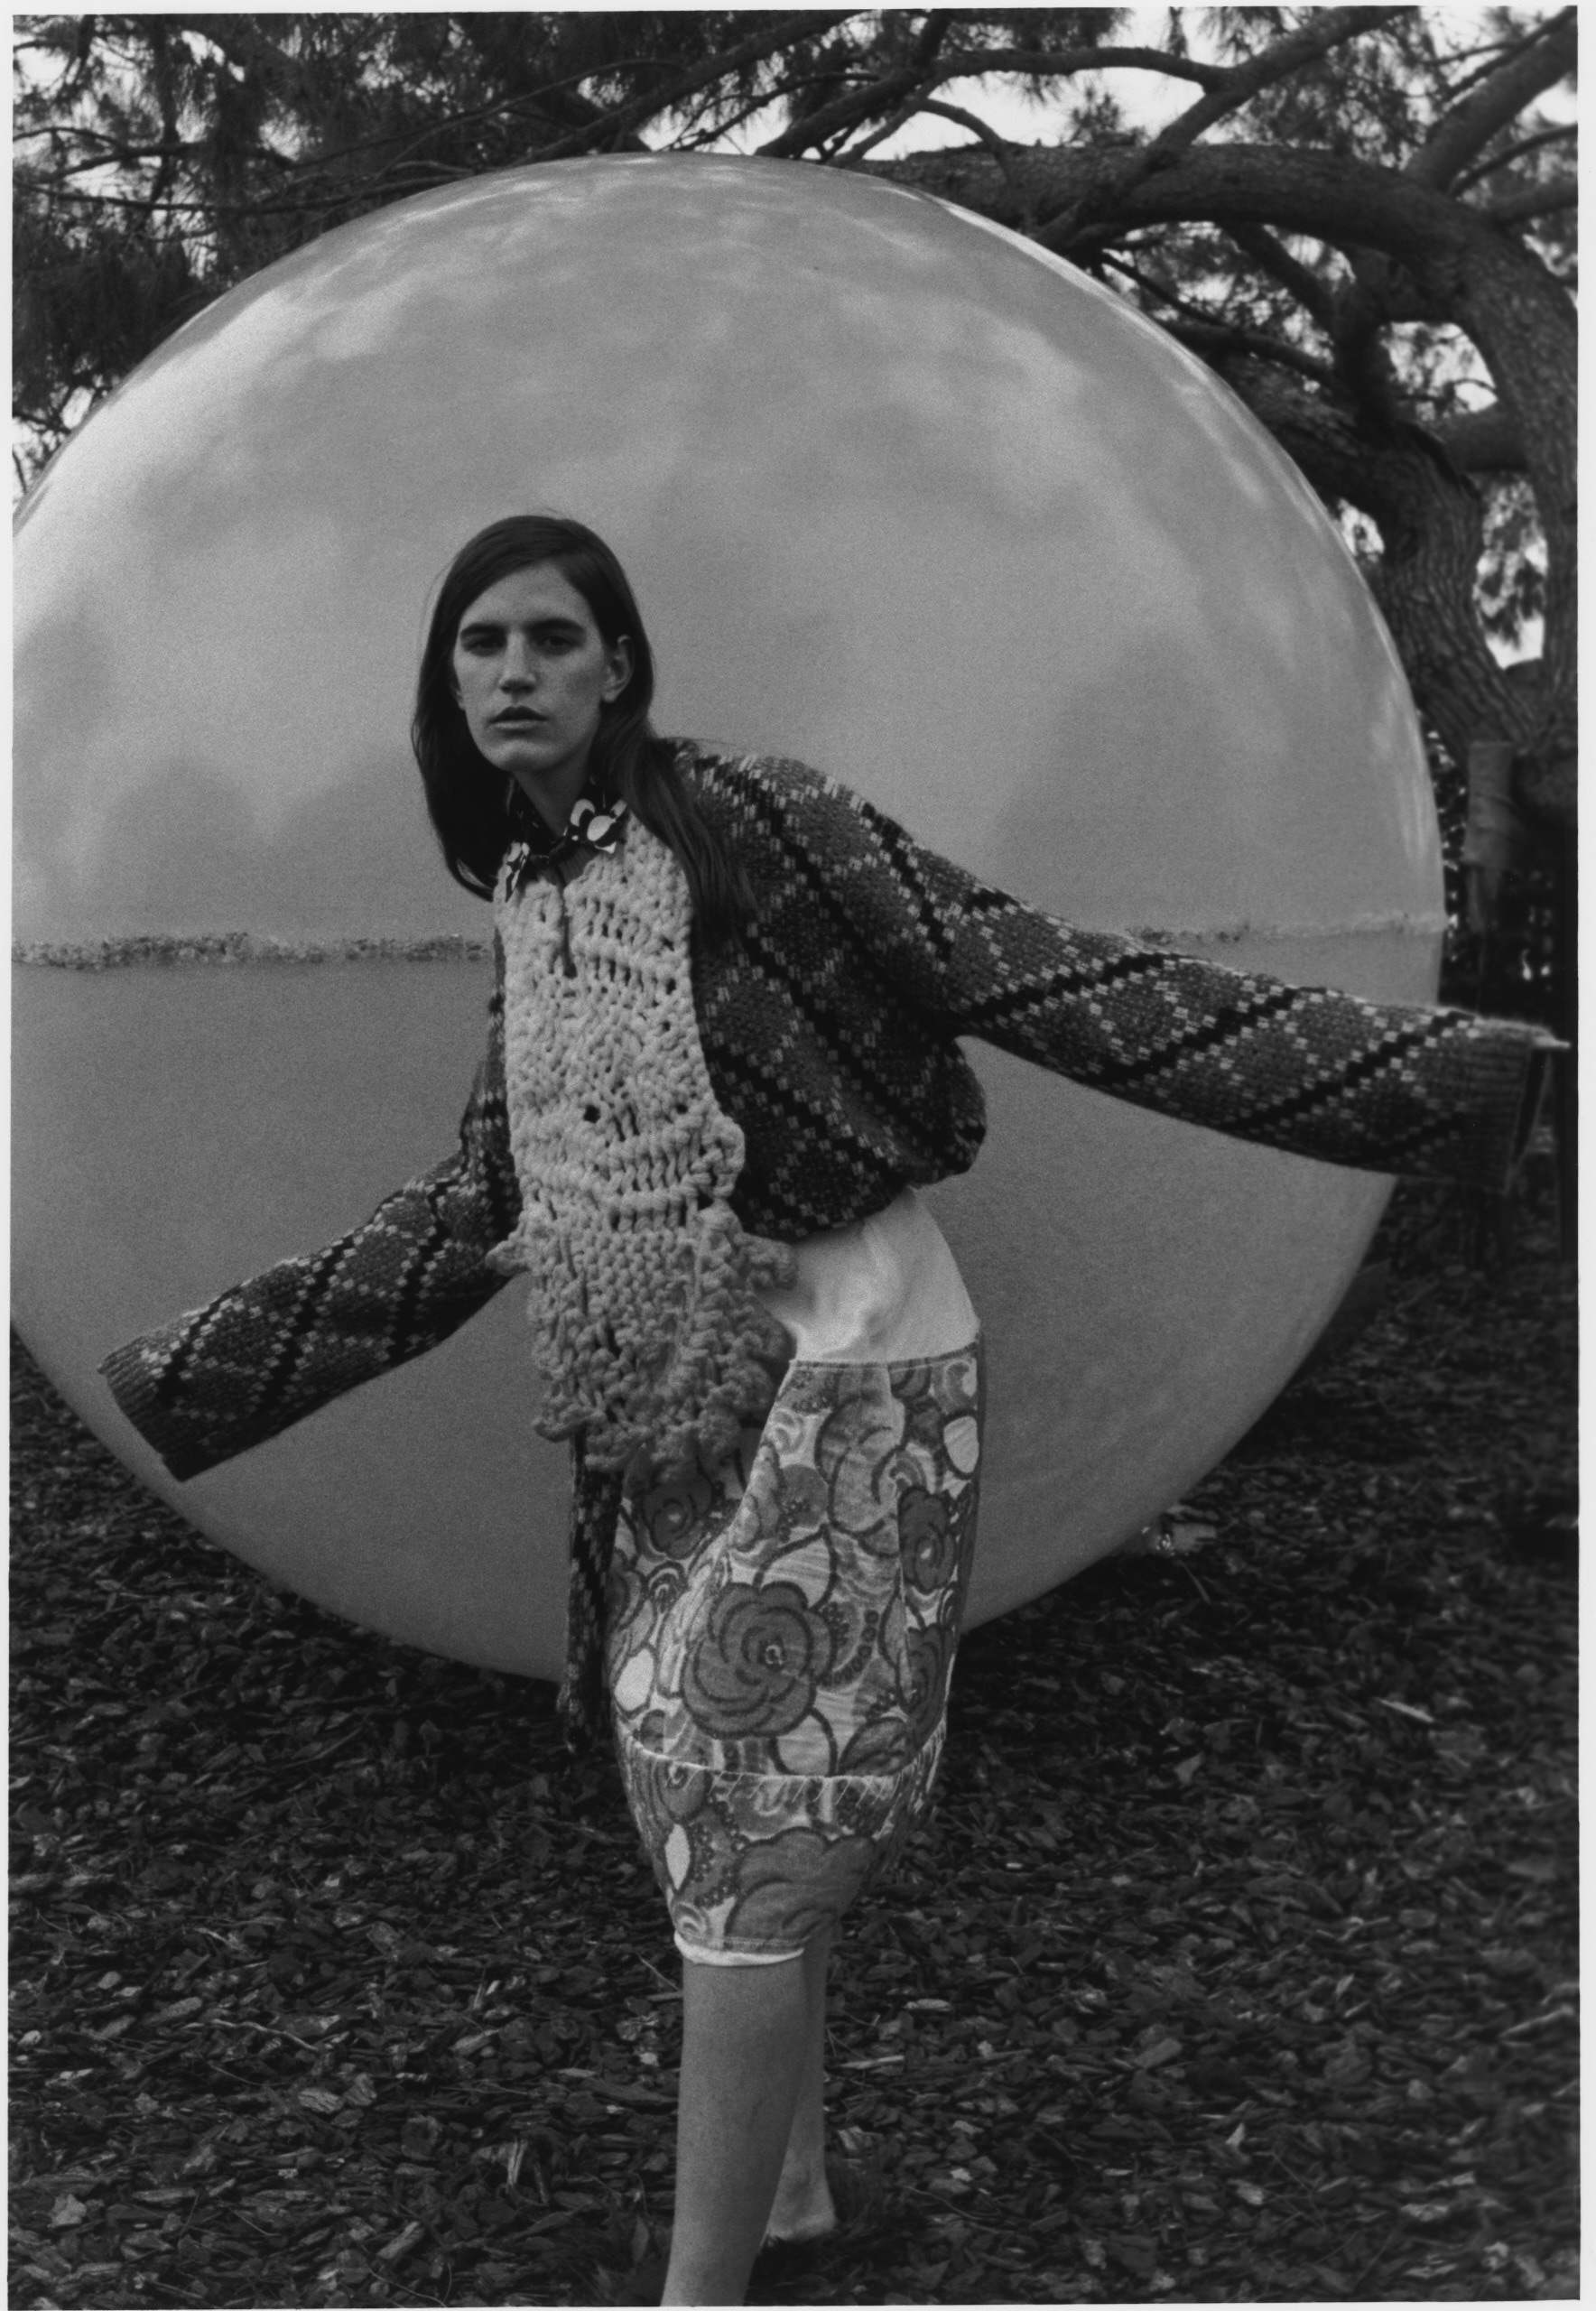 Sweater by Loewe. Shirt by Katharine Hamnett. Bib by Congregation. Skirt by Marni. 'The Sphere 3D Spectrum', by Clifton Mahangoe.  Photography: Jack Symes. Fashion: Marianthi Hatzikidi